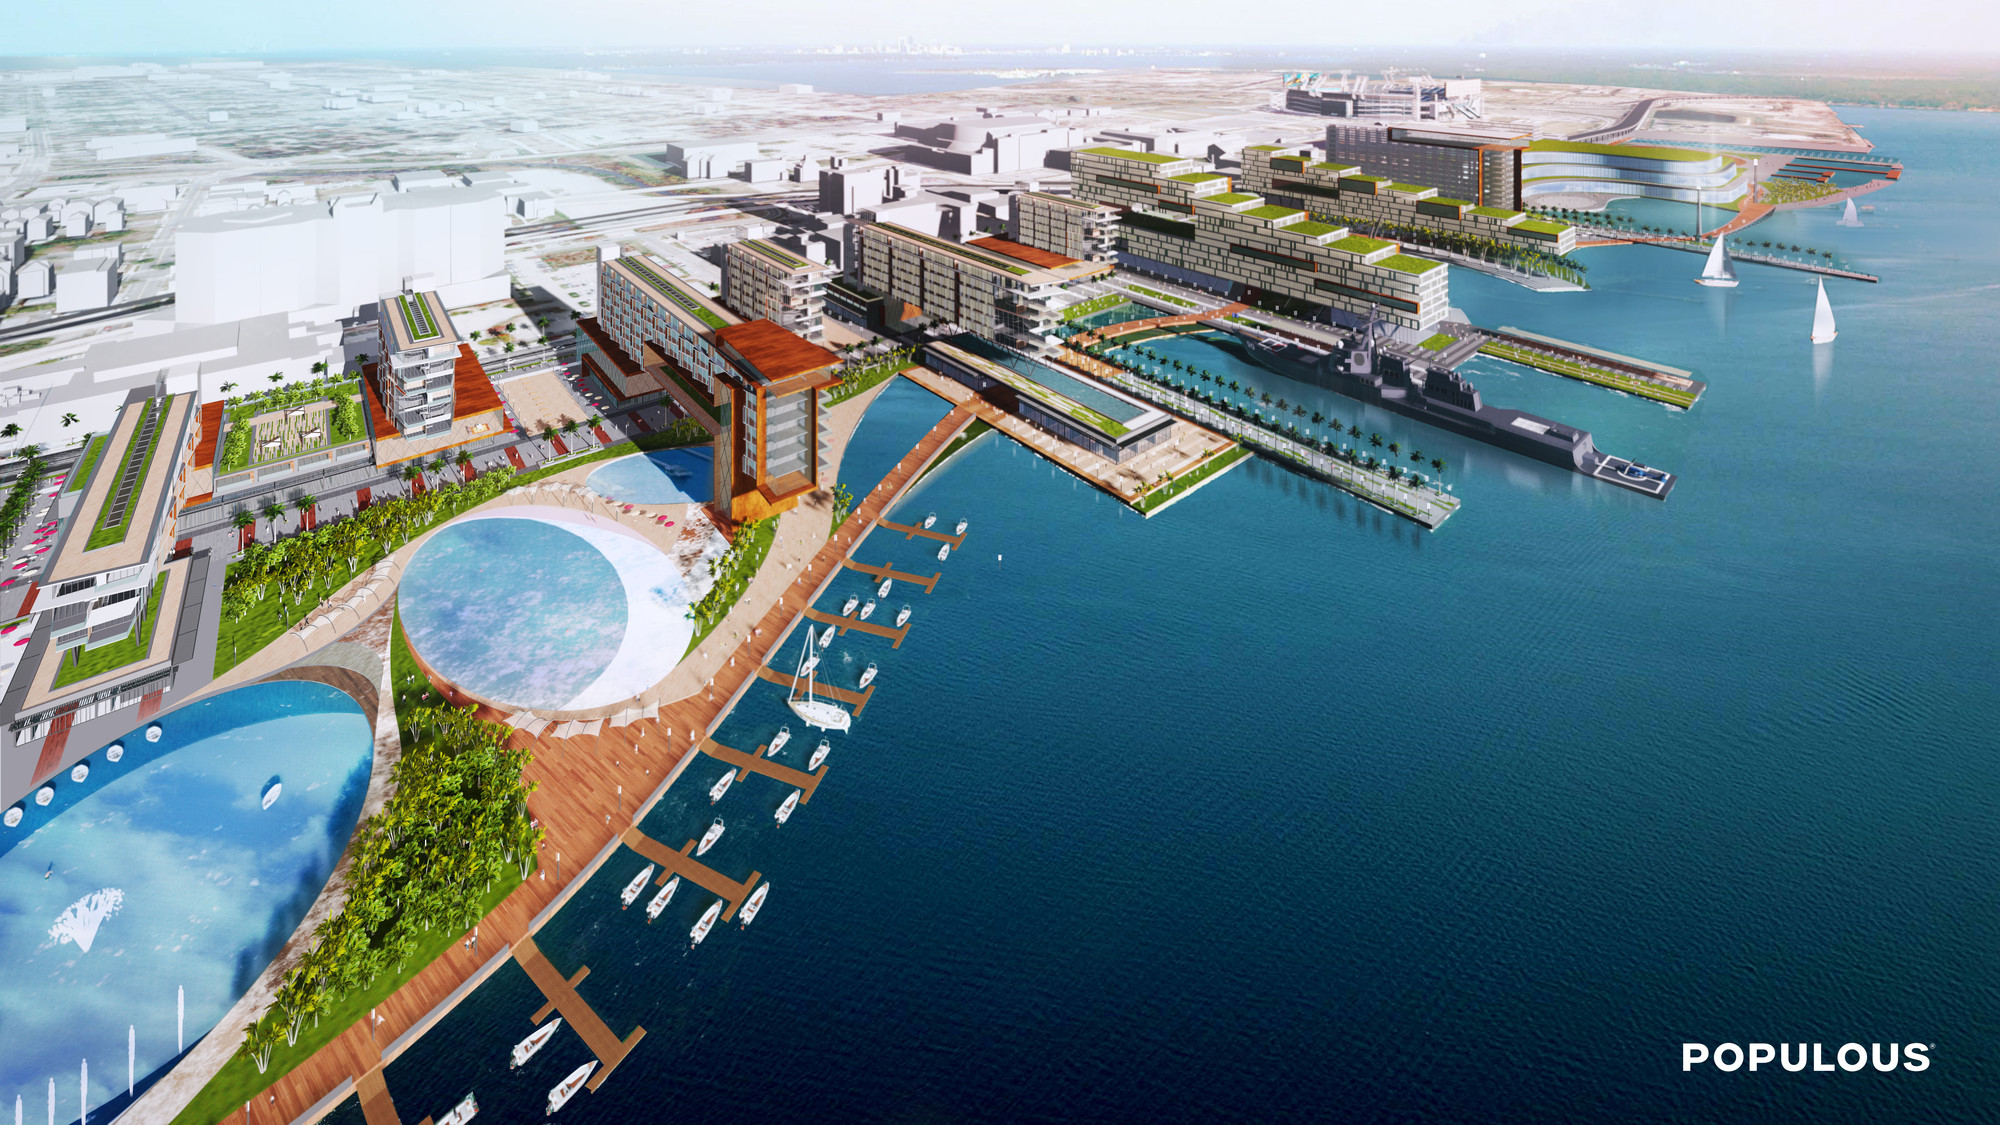 Populous Unveils Plan to Redevelop Jacksonville's Shipyards District, Shipyards aerial view. Image Courtesy of Populous